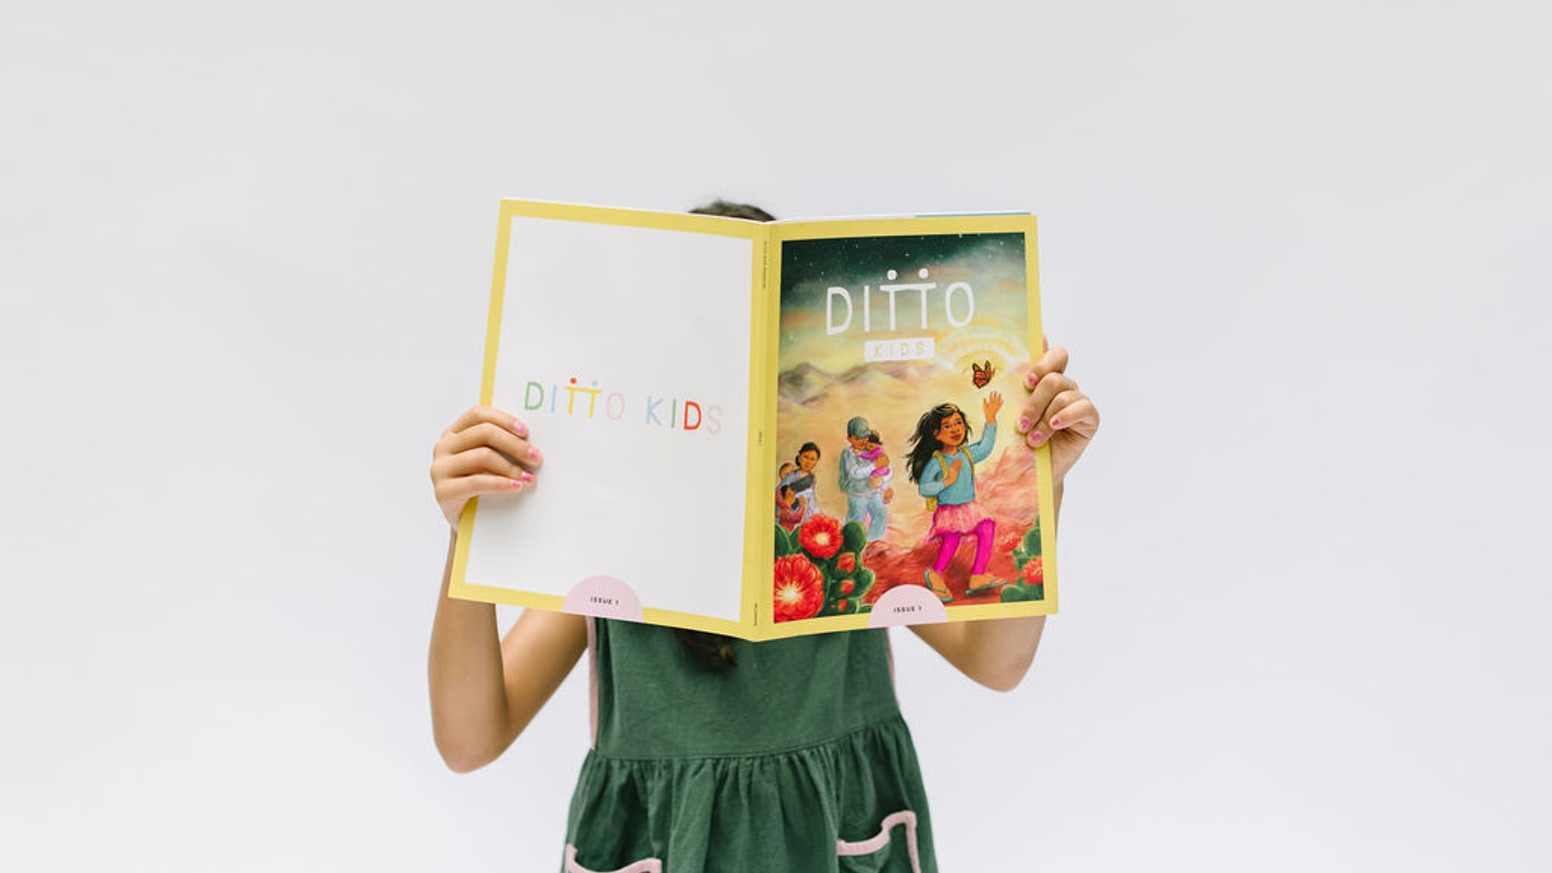 A magazine that empowers parents and educators to help the children in their lives on their journey to becoming actively anti-racist. We are officially funded! We are now accepting pre-orders at www.dittokidsmagazine.com.